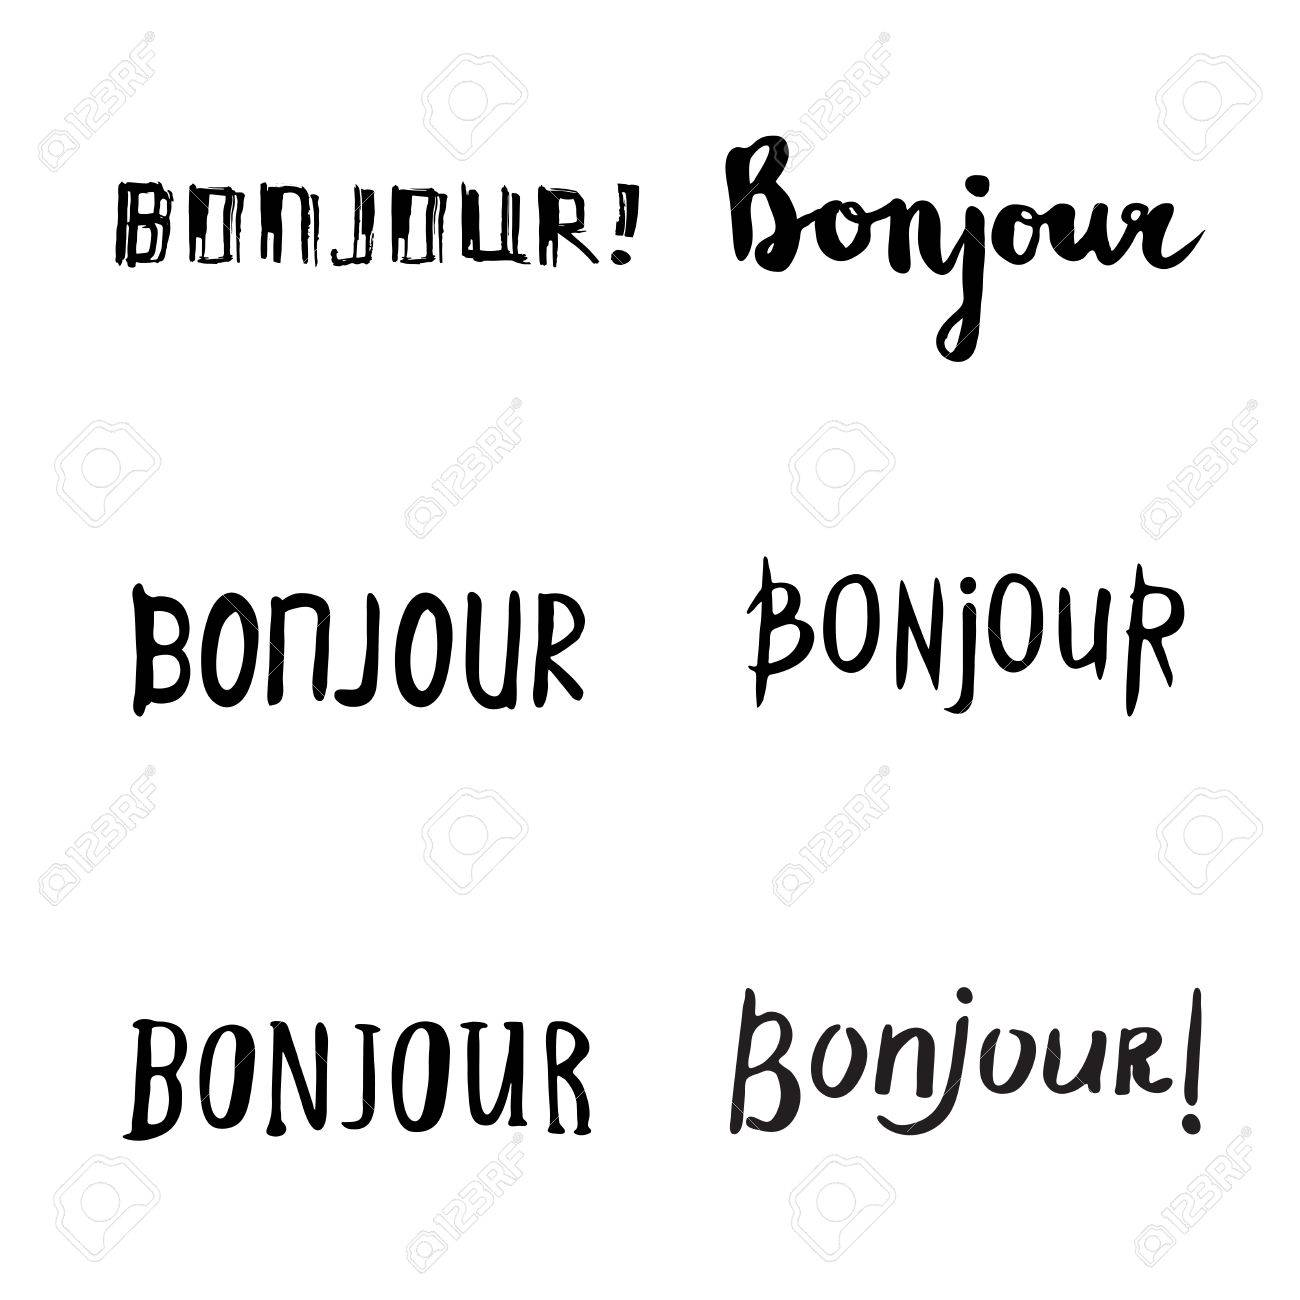 Inspirational Phrases Hand Drawn Bonjour Phraseshello In Frenchhandwritten